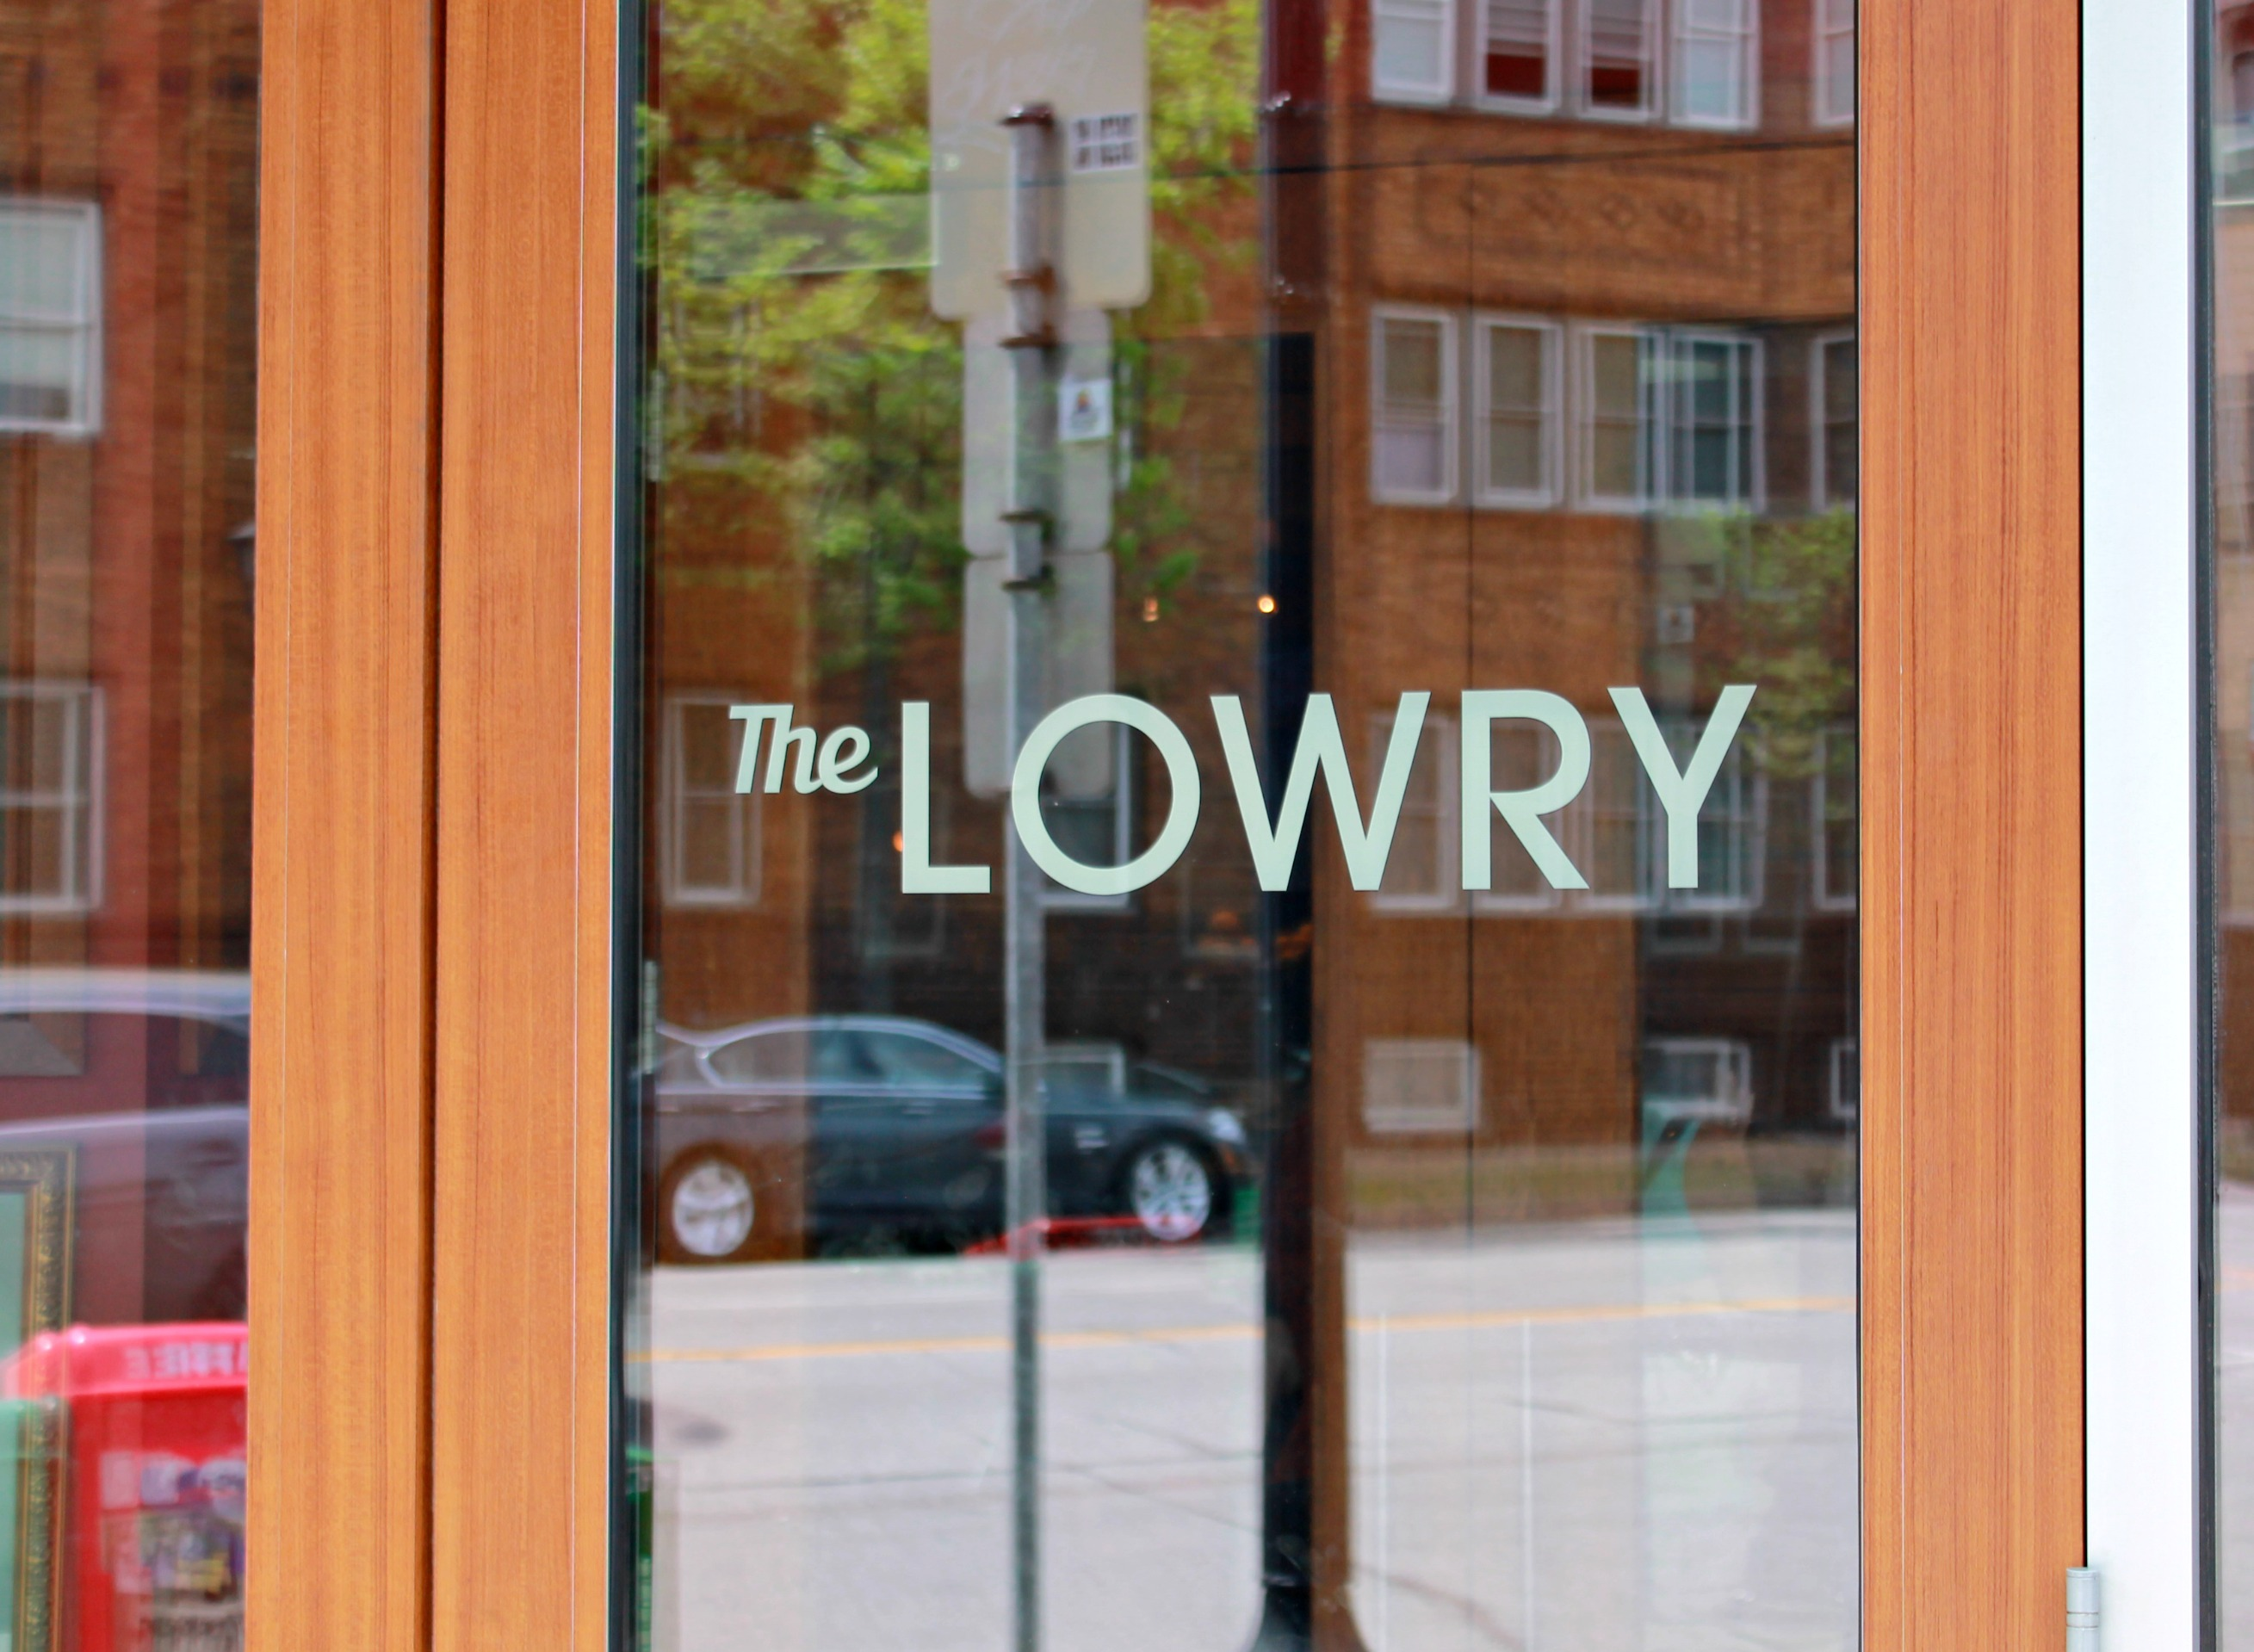 The Lowry in Uptown Minneapolis